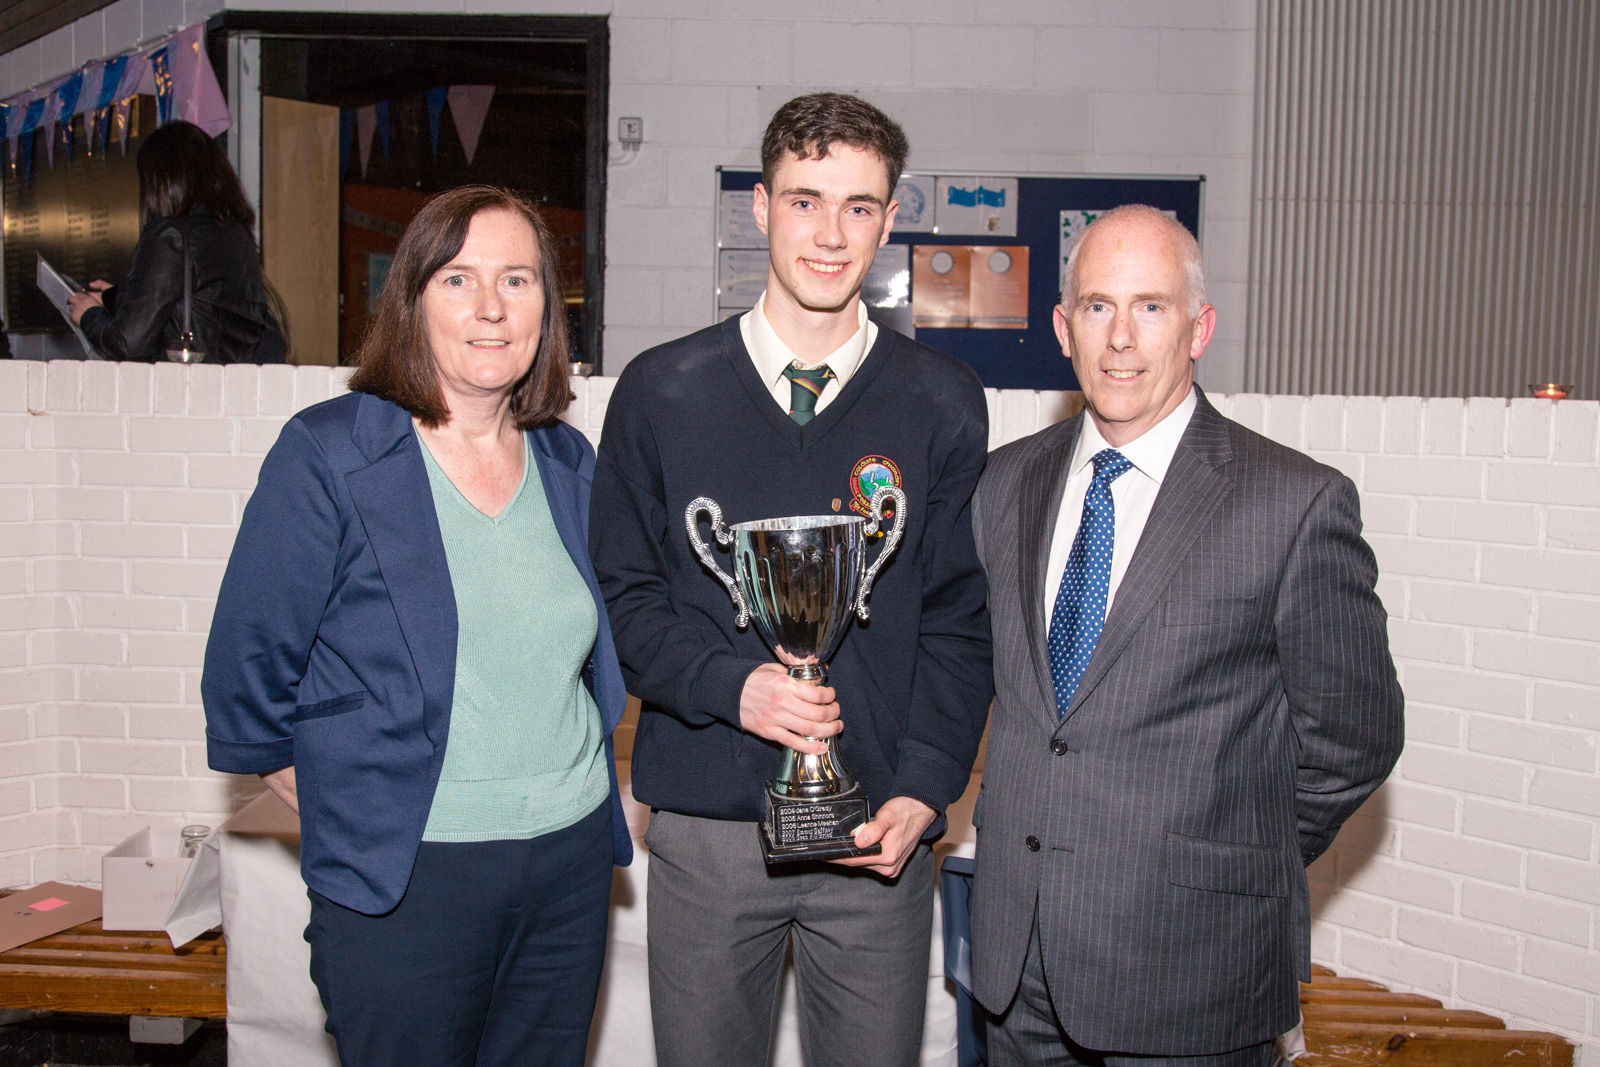 Conal Hayes. Overall Student of the Year 2016